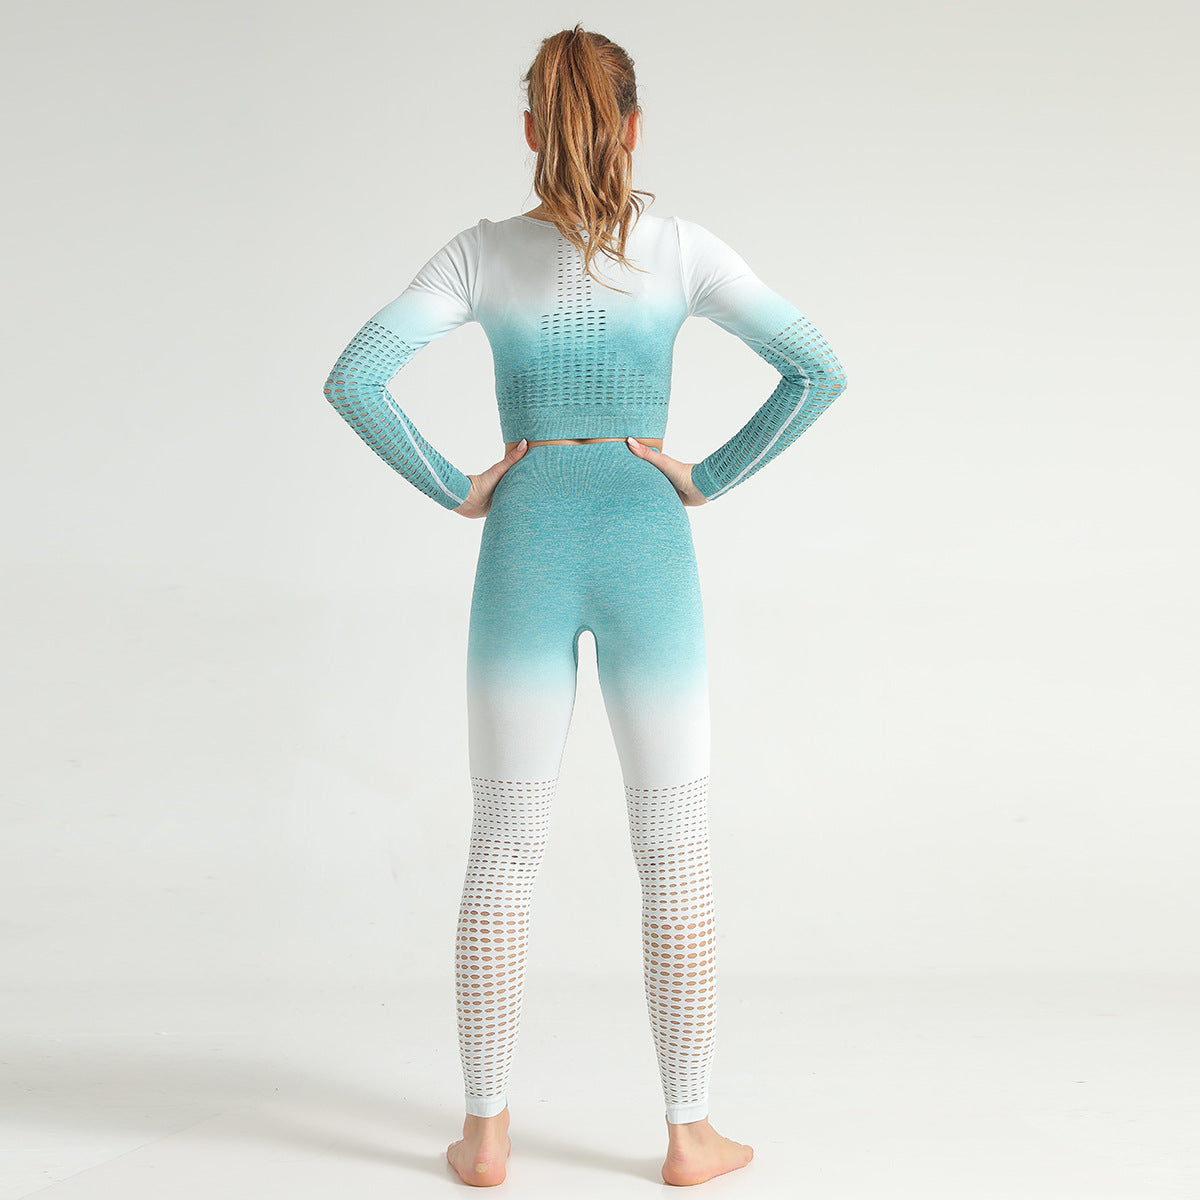 2020 Woman Gradient Long Sleeve Seamless Yoga Suit High Waisted Leggings Activewear Gym Set Sportswear Fitness Outfits YS-004